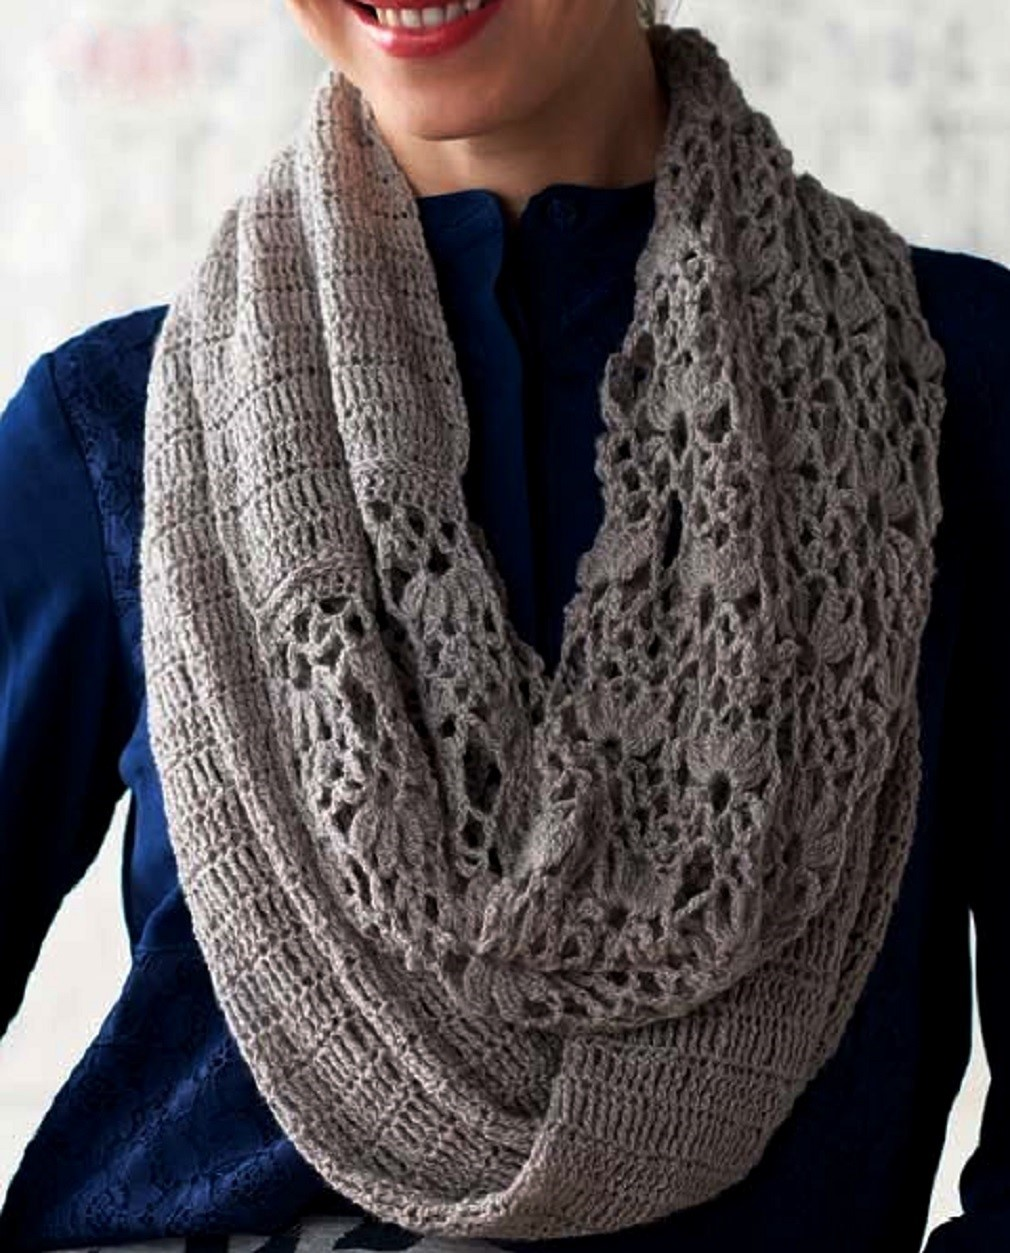 Crochet Yarn Store : See that lovely pattern in scarf crochet yarn store FREE PATTERNS